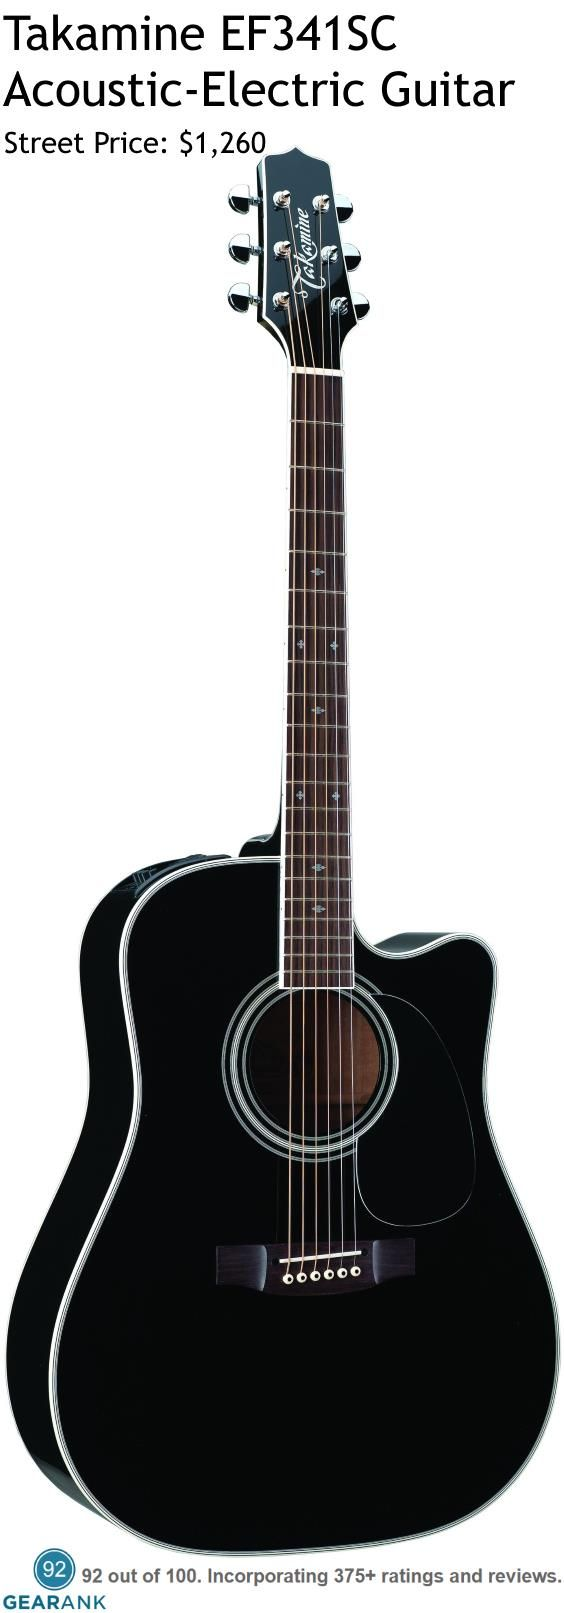 Takamine EF341SC Acoustic-Electric Guitar. It has a solid cedar top with maple back and sides. The electronics are  Takamine's CT4B II preamp system paired with their Palathetic under-saddle pickup.  For a Detailed Guide to Acoustic Guitars see https://www.gearank.com/guides/acoustic-guitars